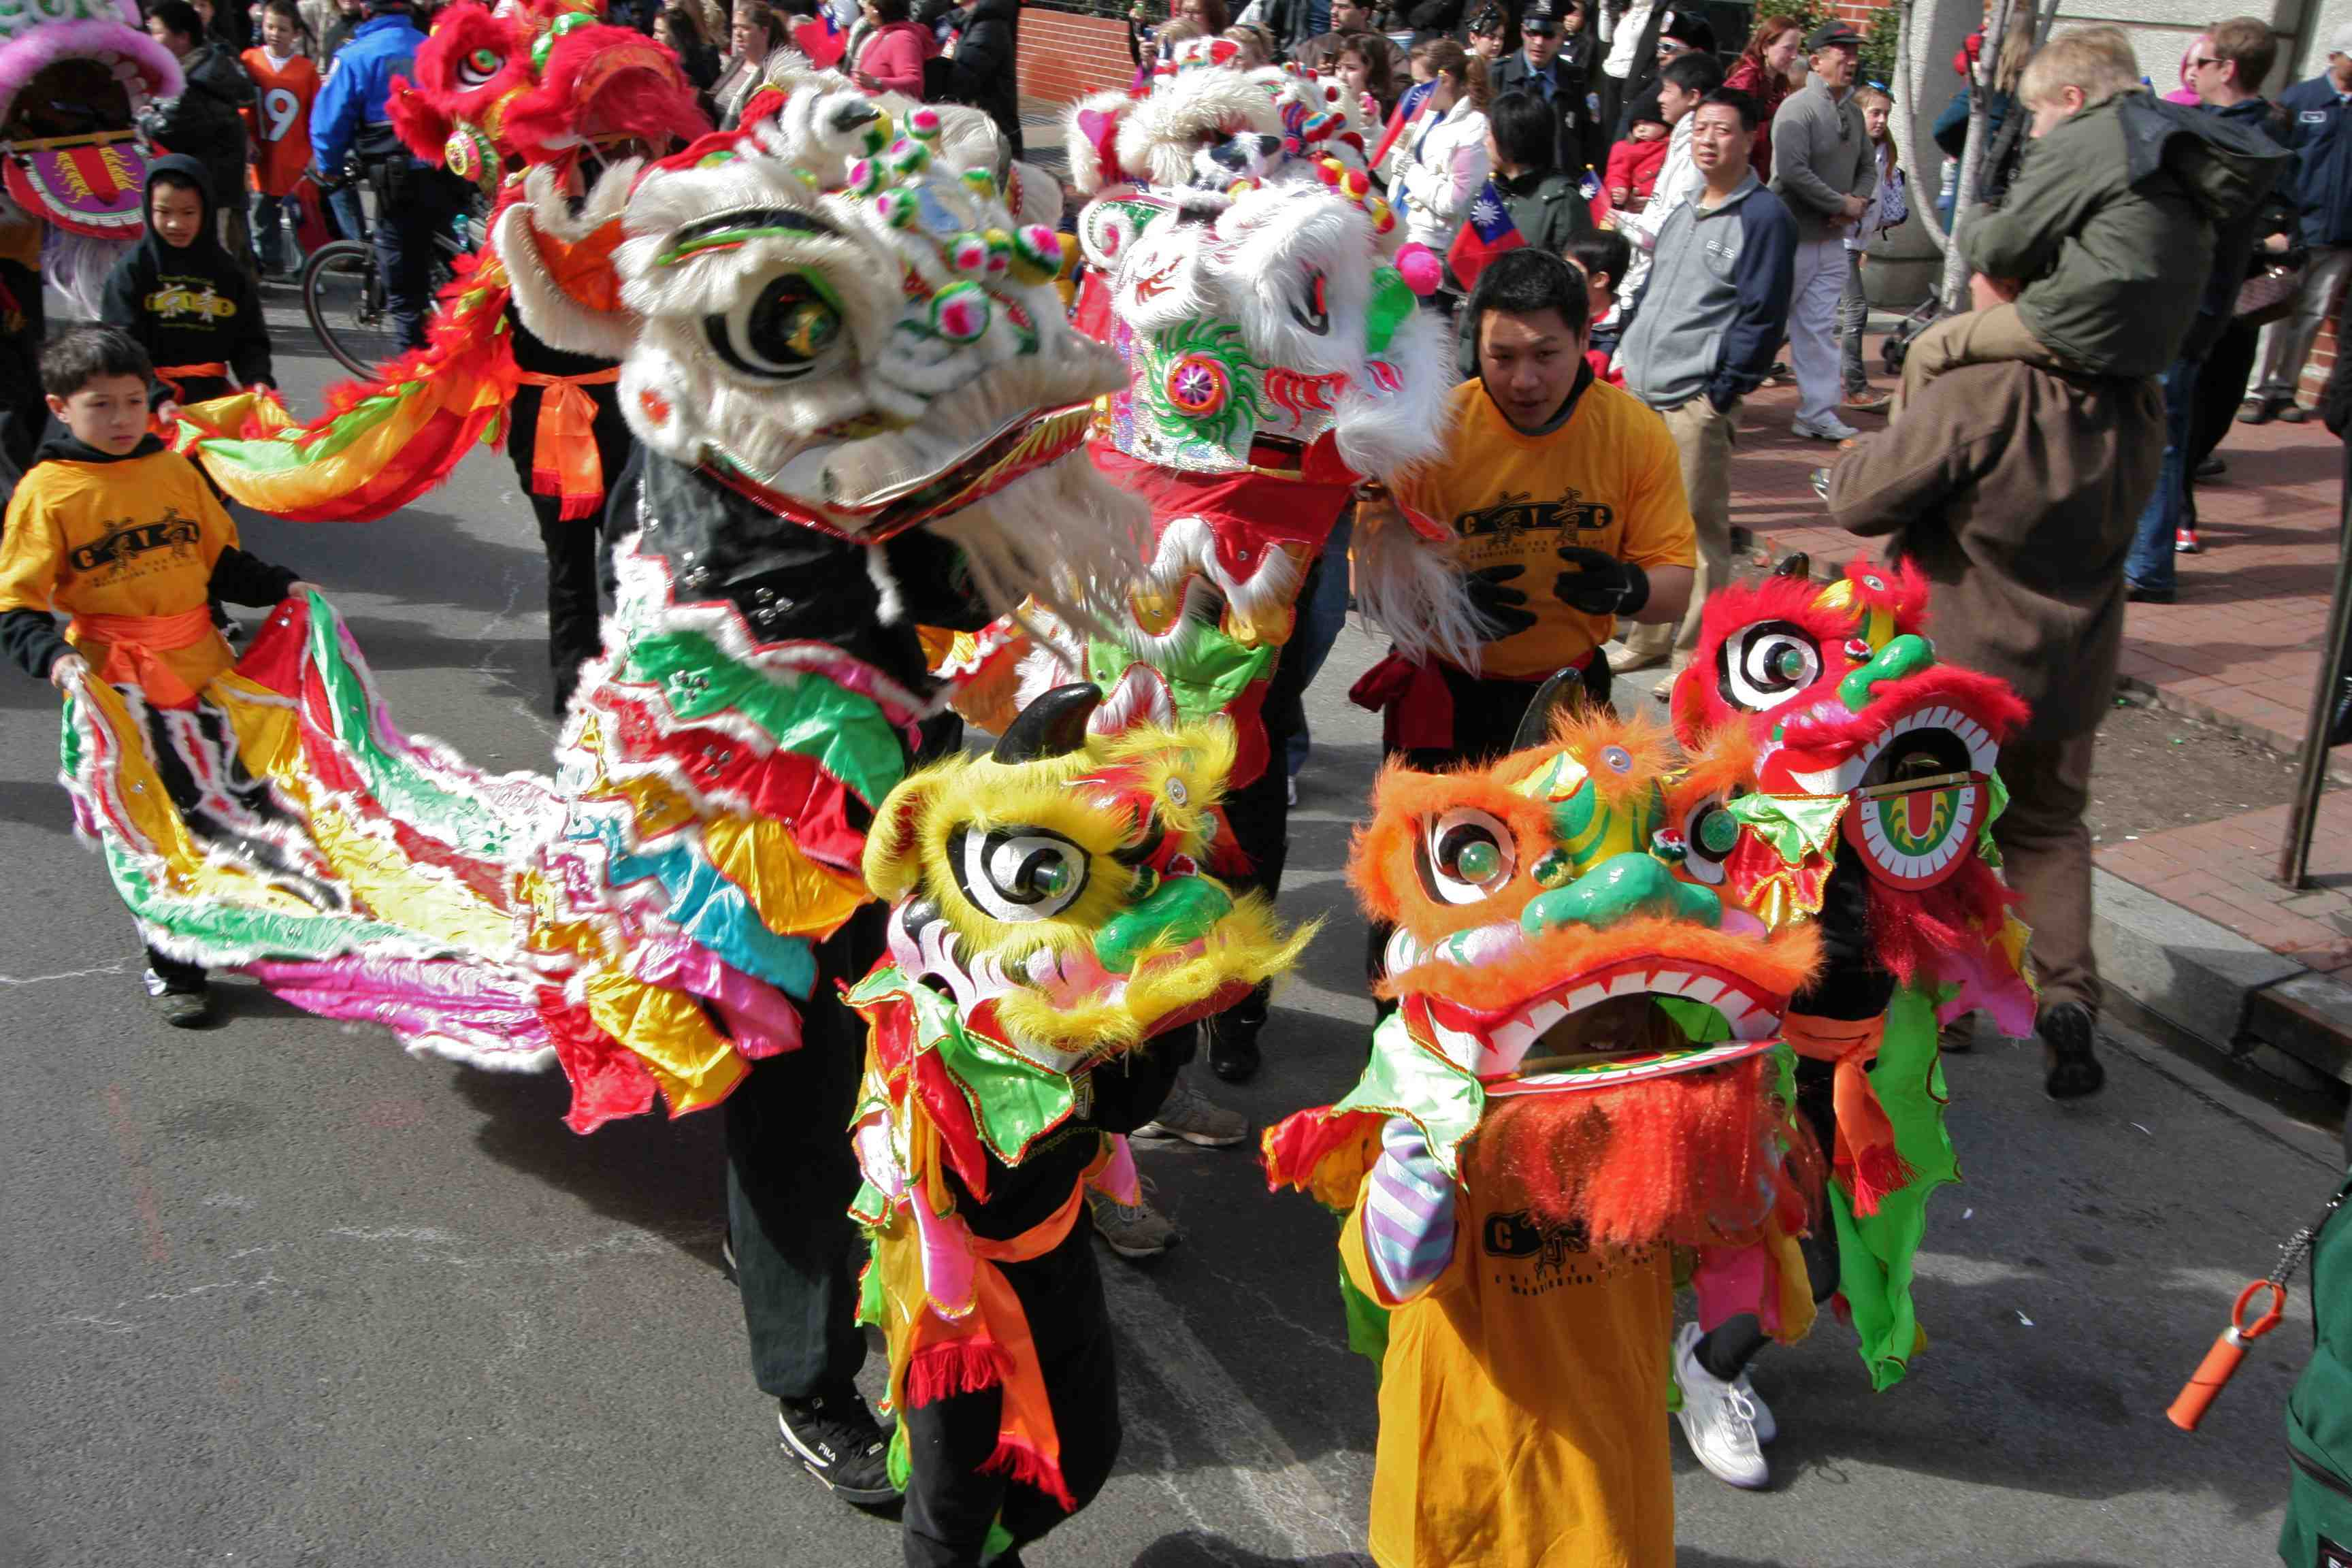 Celebrate the Asian Lunar New Year in Manhattan - TripSavvy